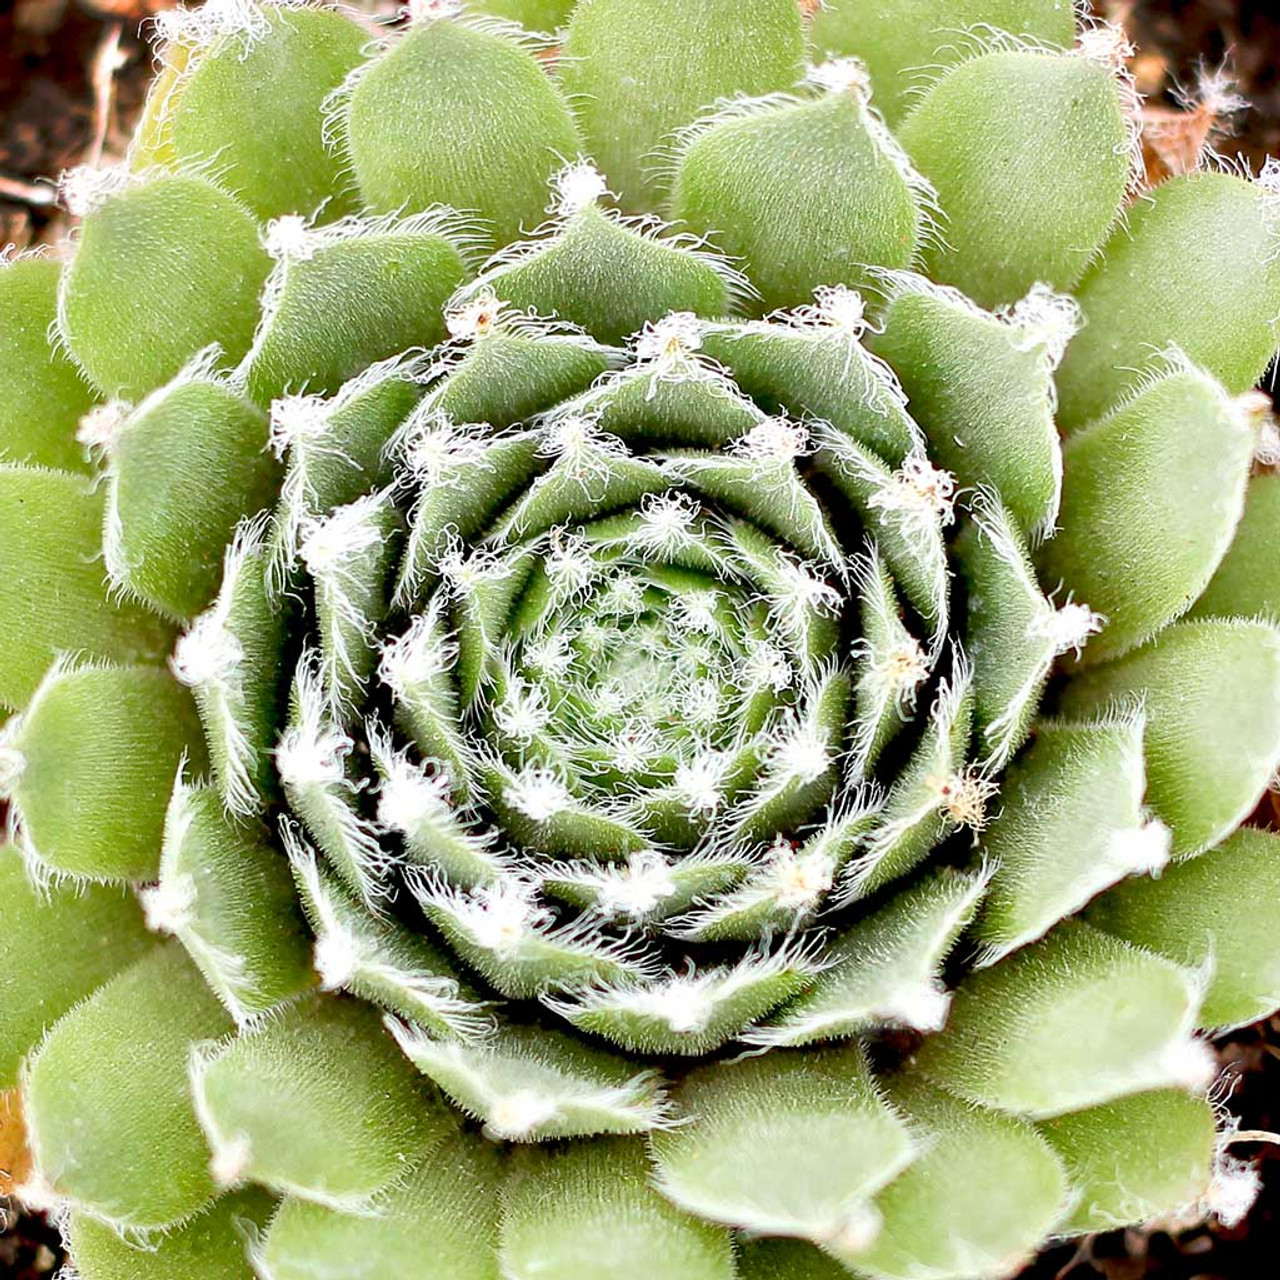 "Picture of 2 (TWO) Hen-and-chicks aka Sempervivum tectorum var. 'Jade Rose' Live Succulent Plant Fit 4"" Pot"